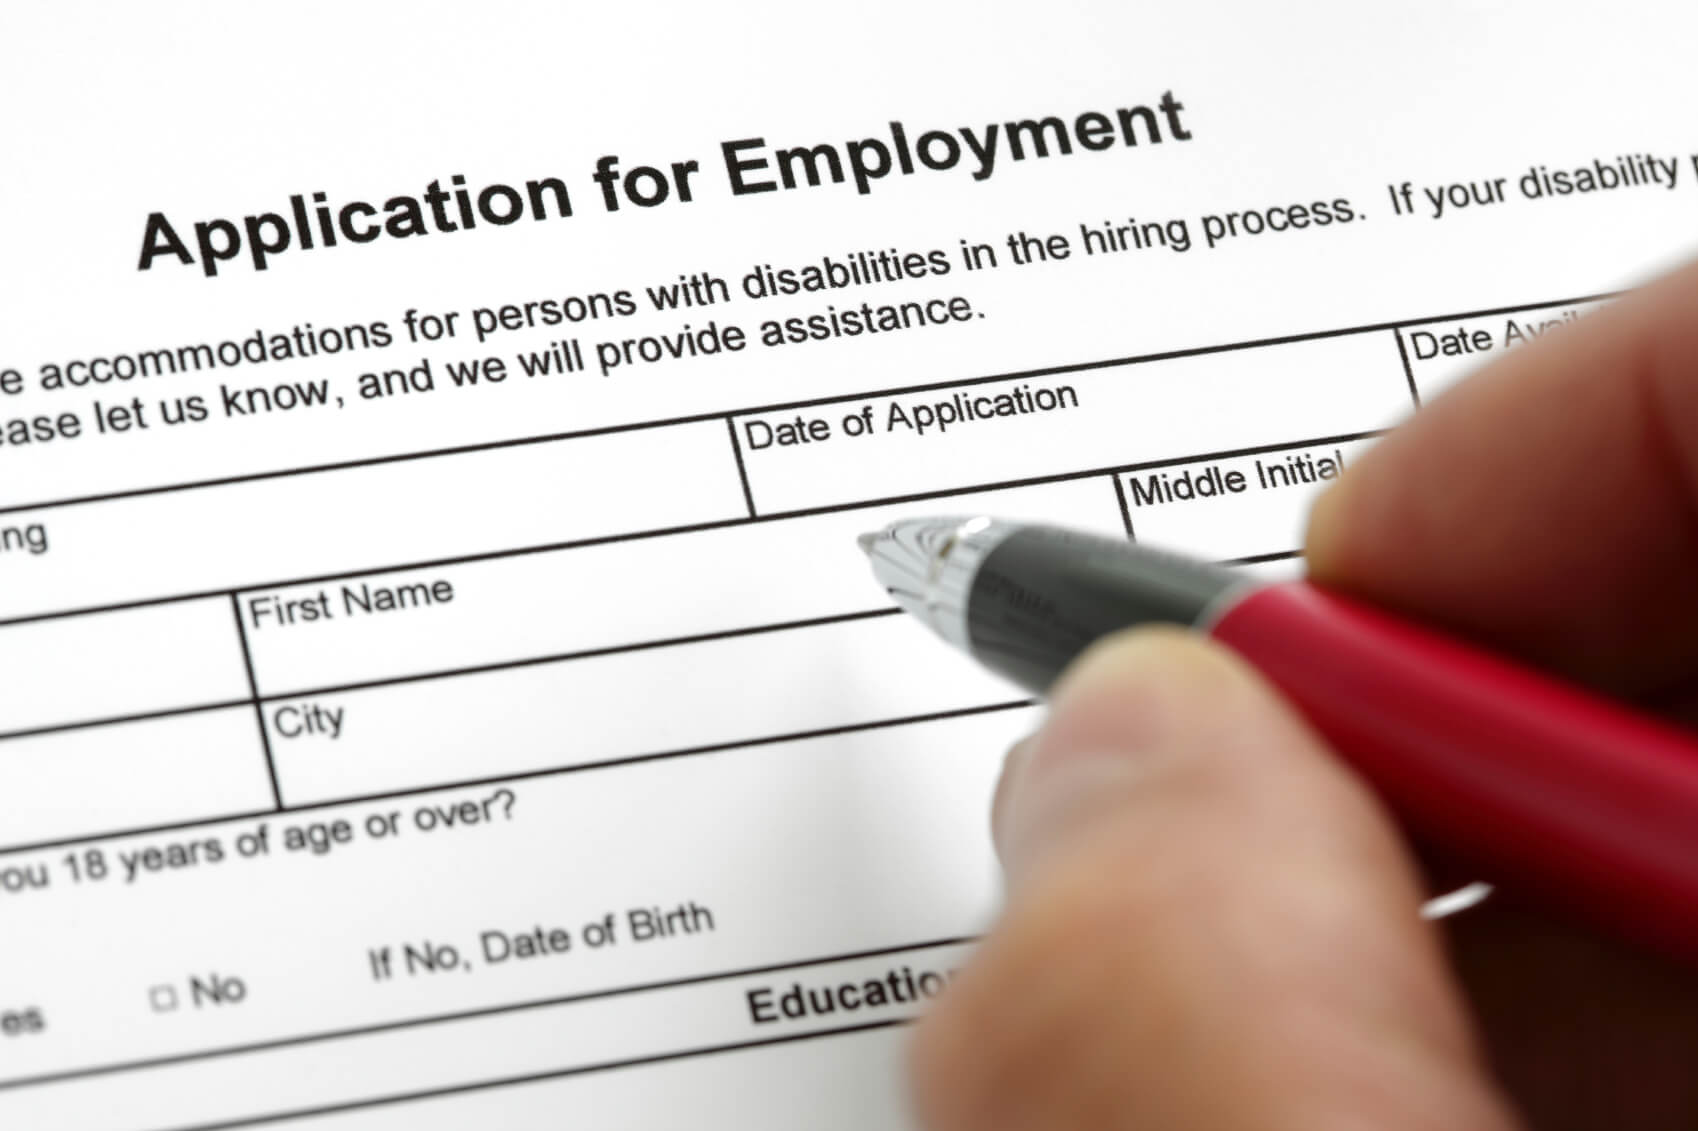 limited flexible job options condemning thousands to poverty mfwf blog